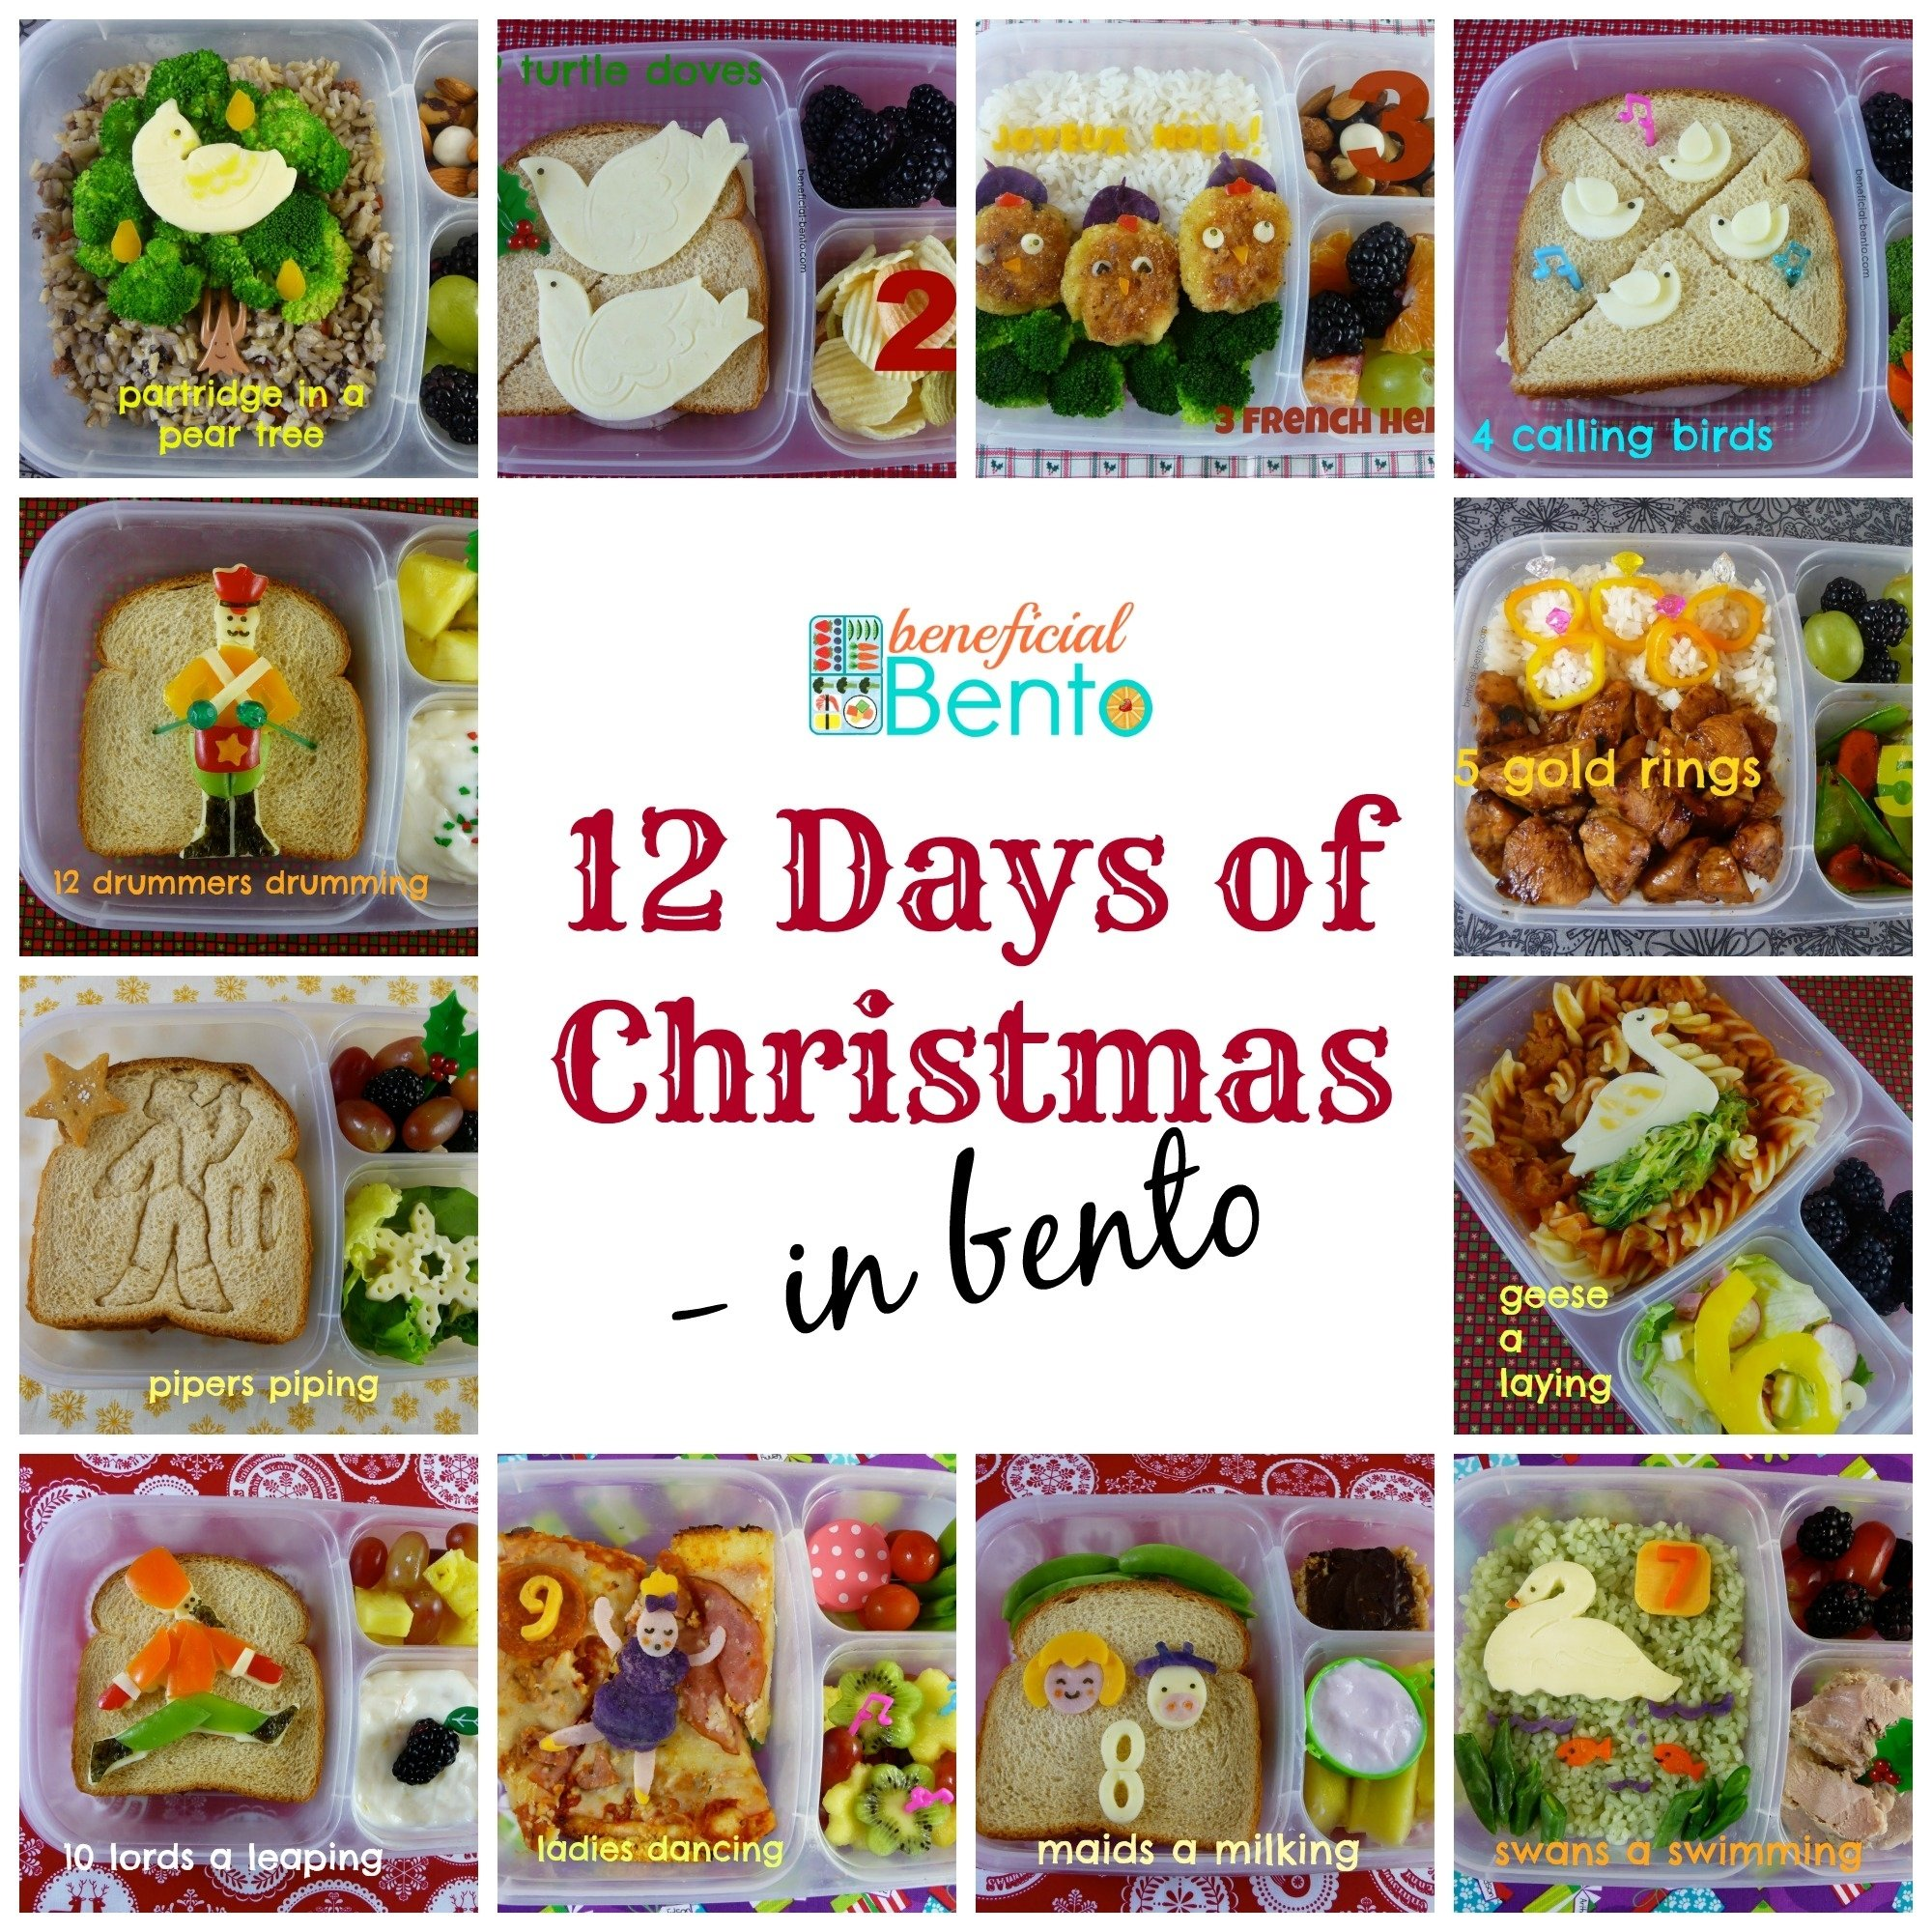 the 12 days of christmas in bento - beneficial bento